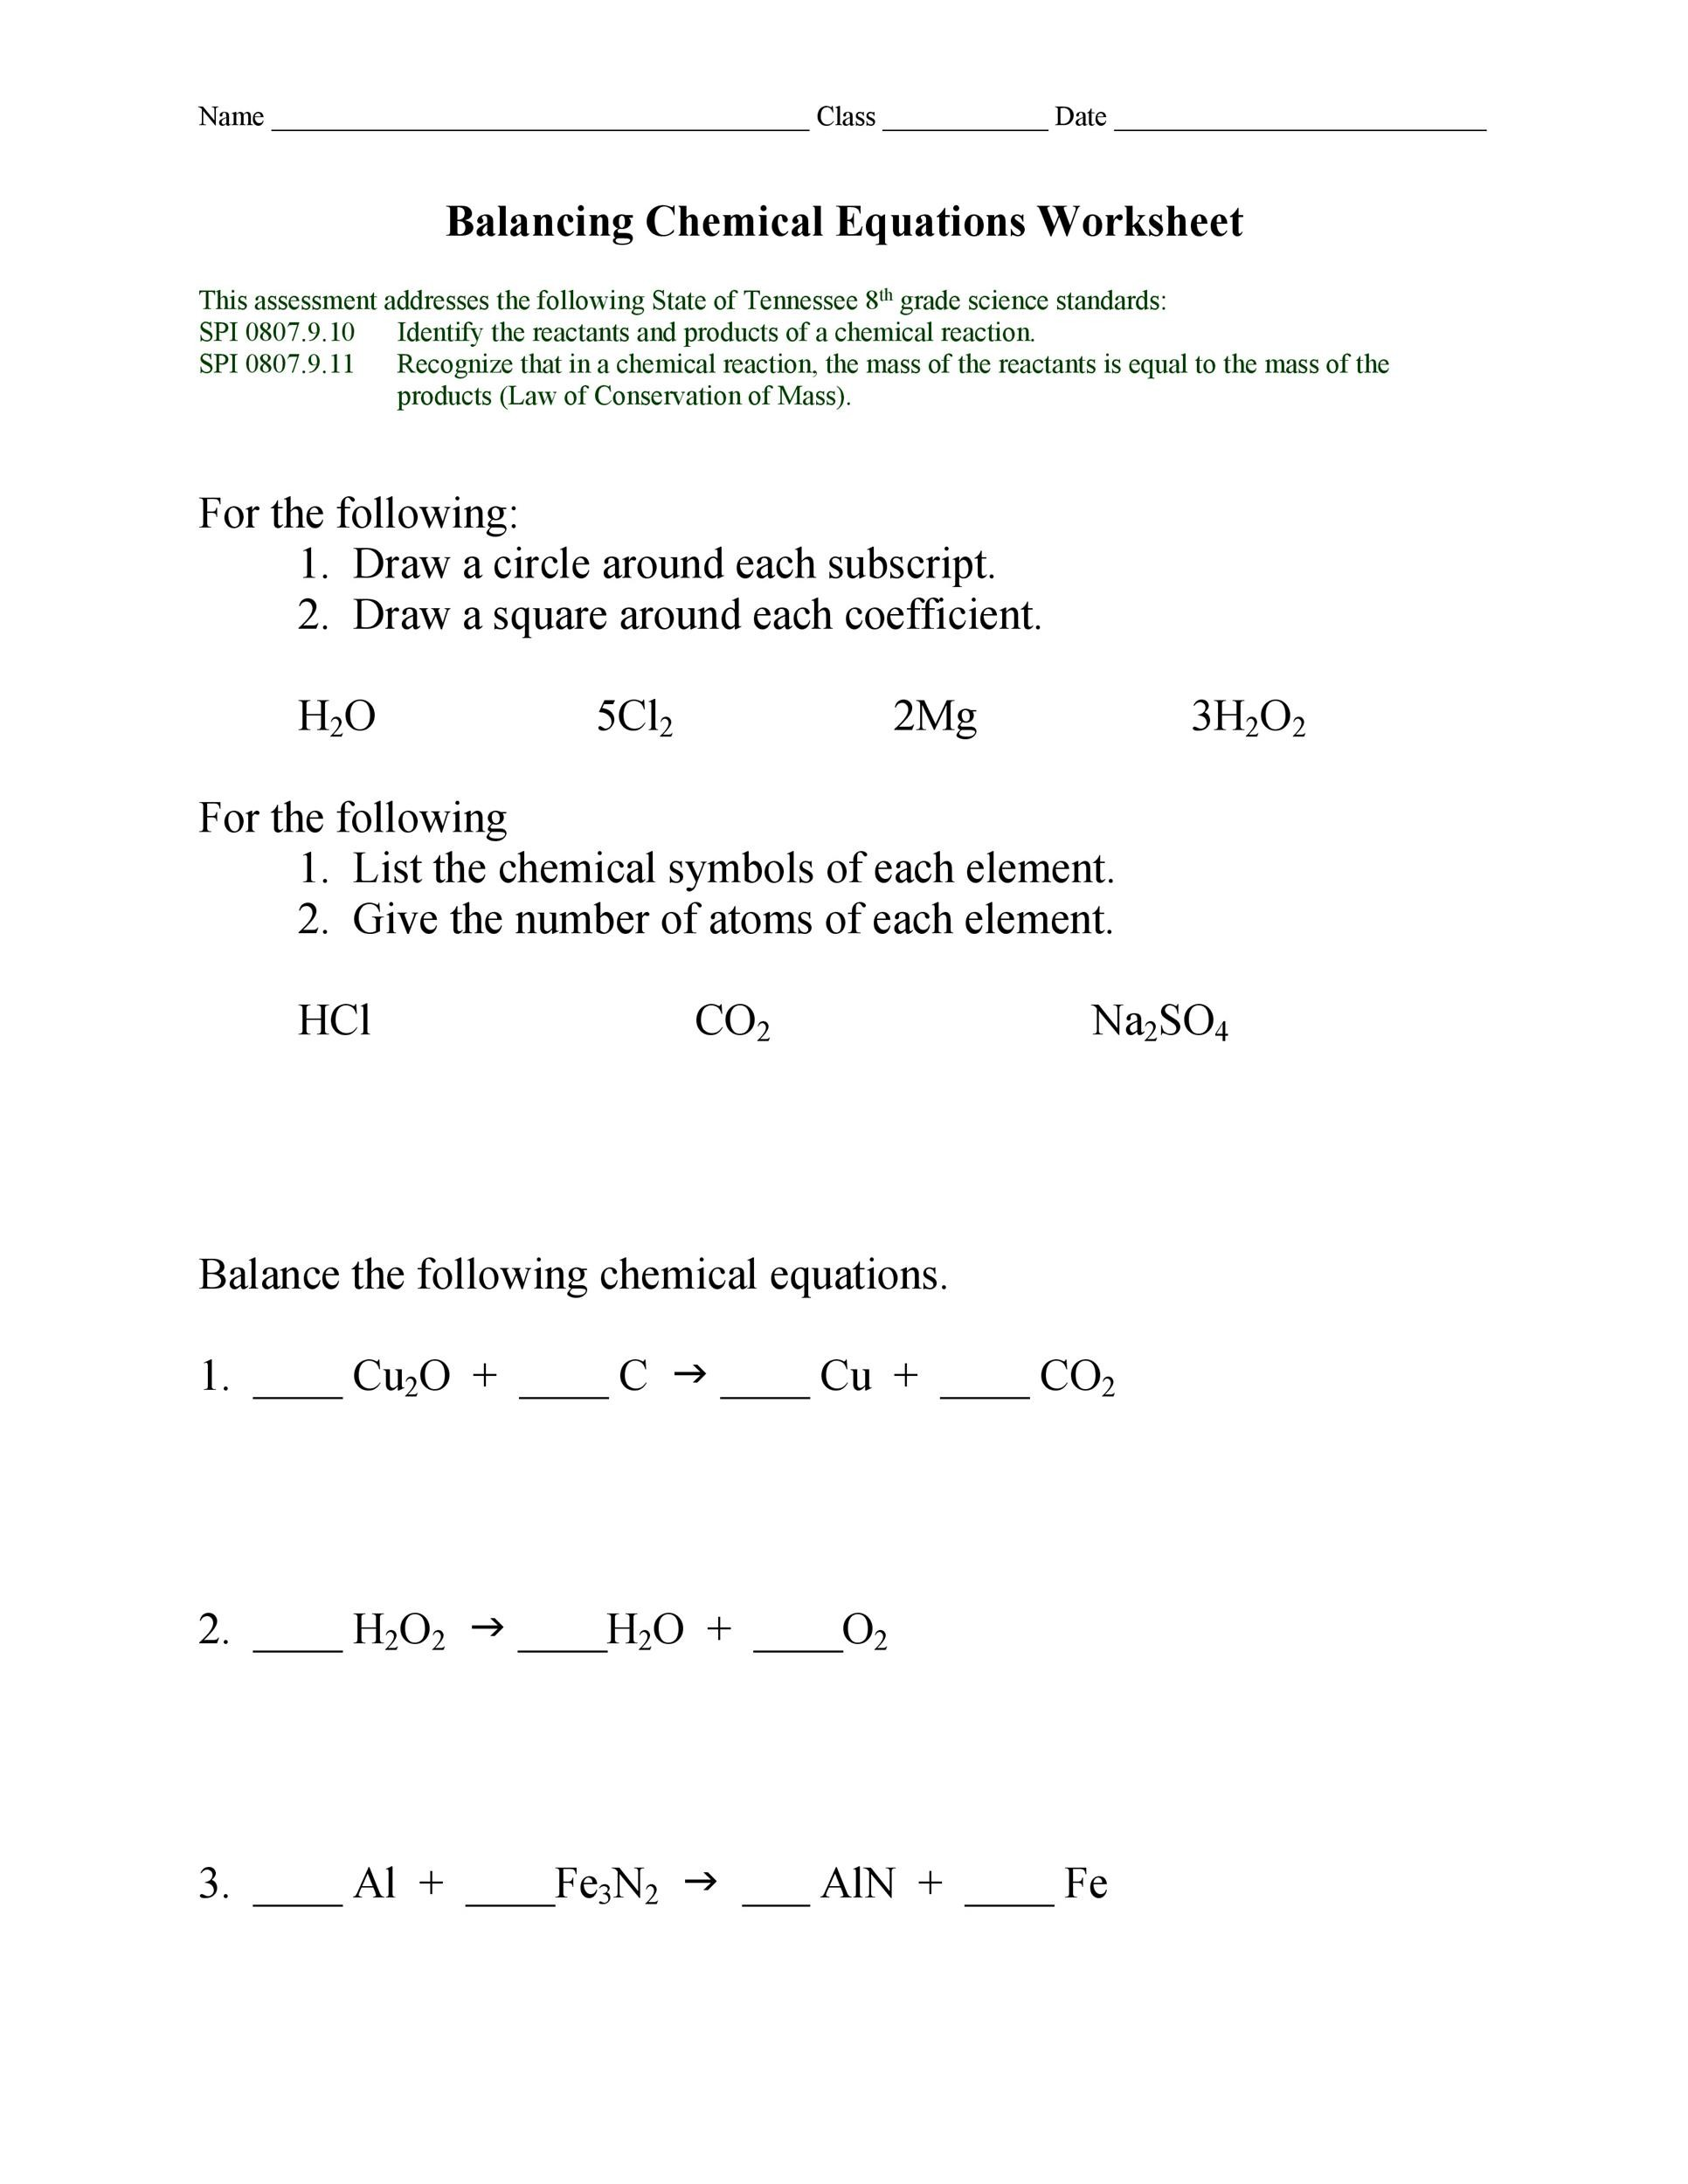 Balancing Chemical Equations Chapter 7 Worksheet 1 – Balancing Chemical Equations Chapter 7 Worksheet 1 Answers